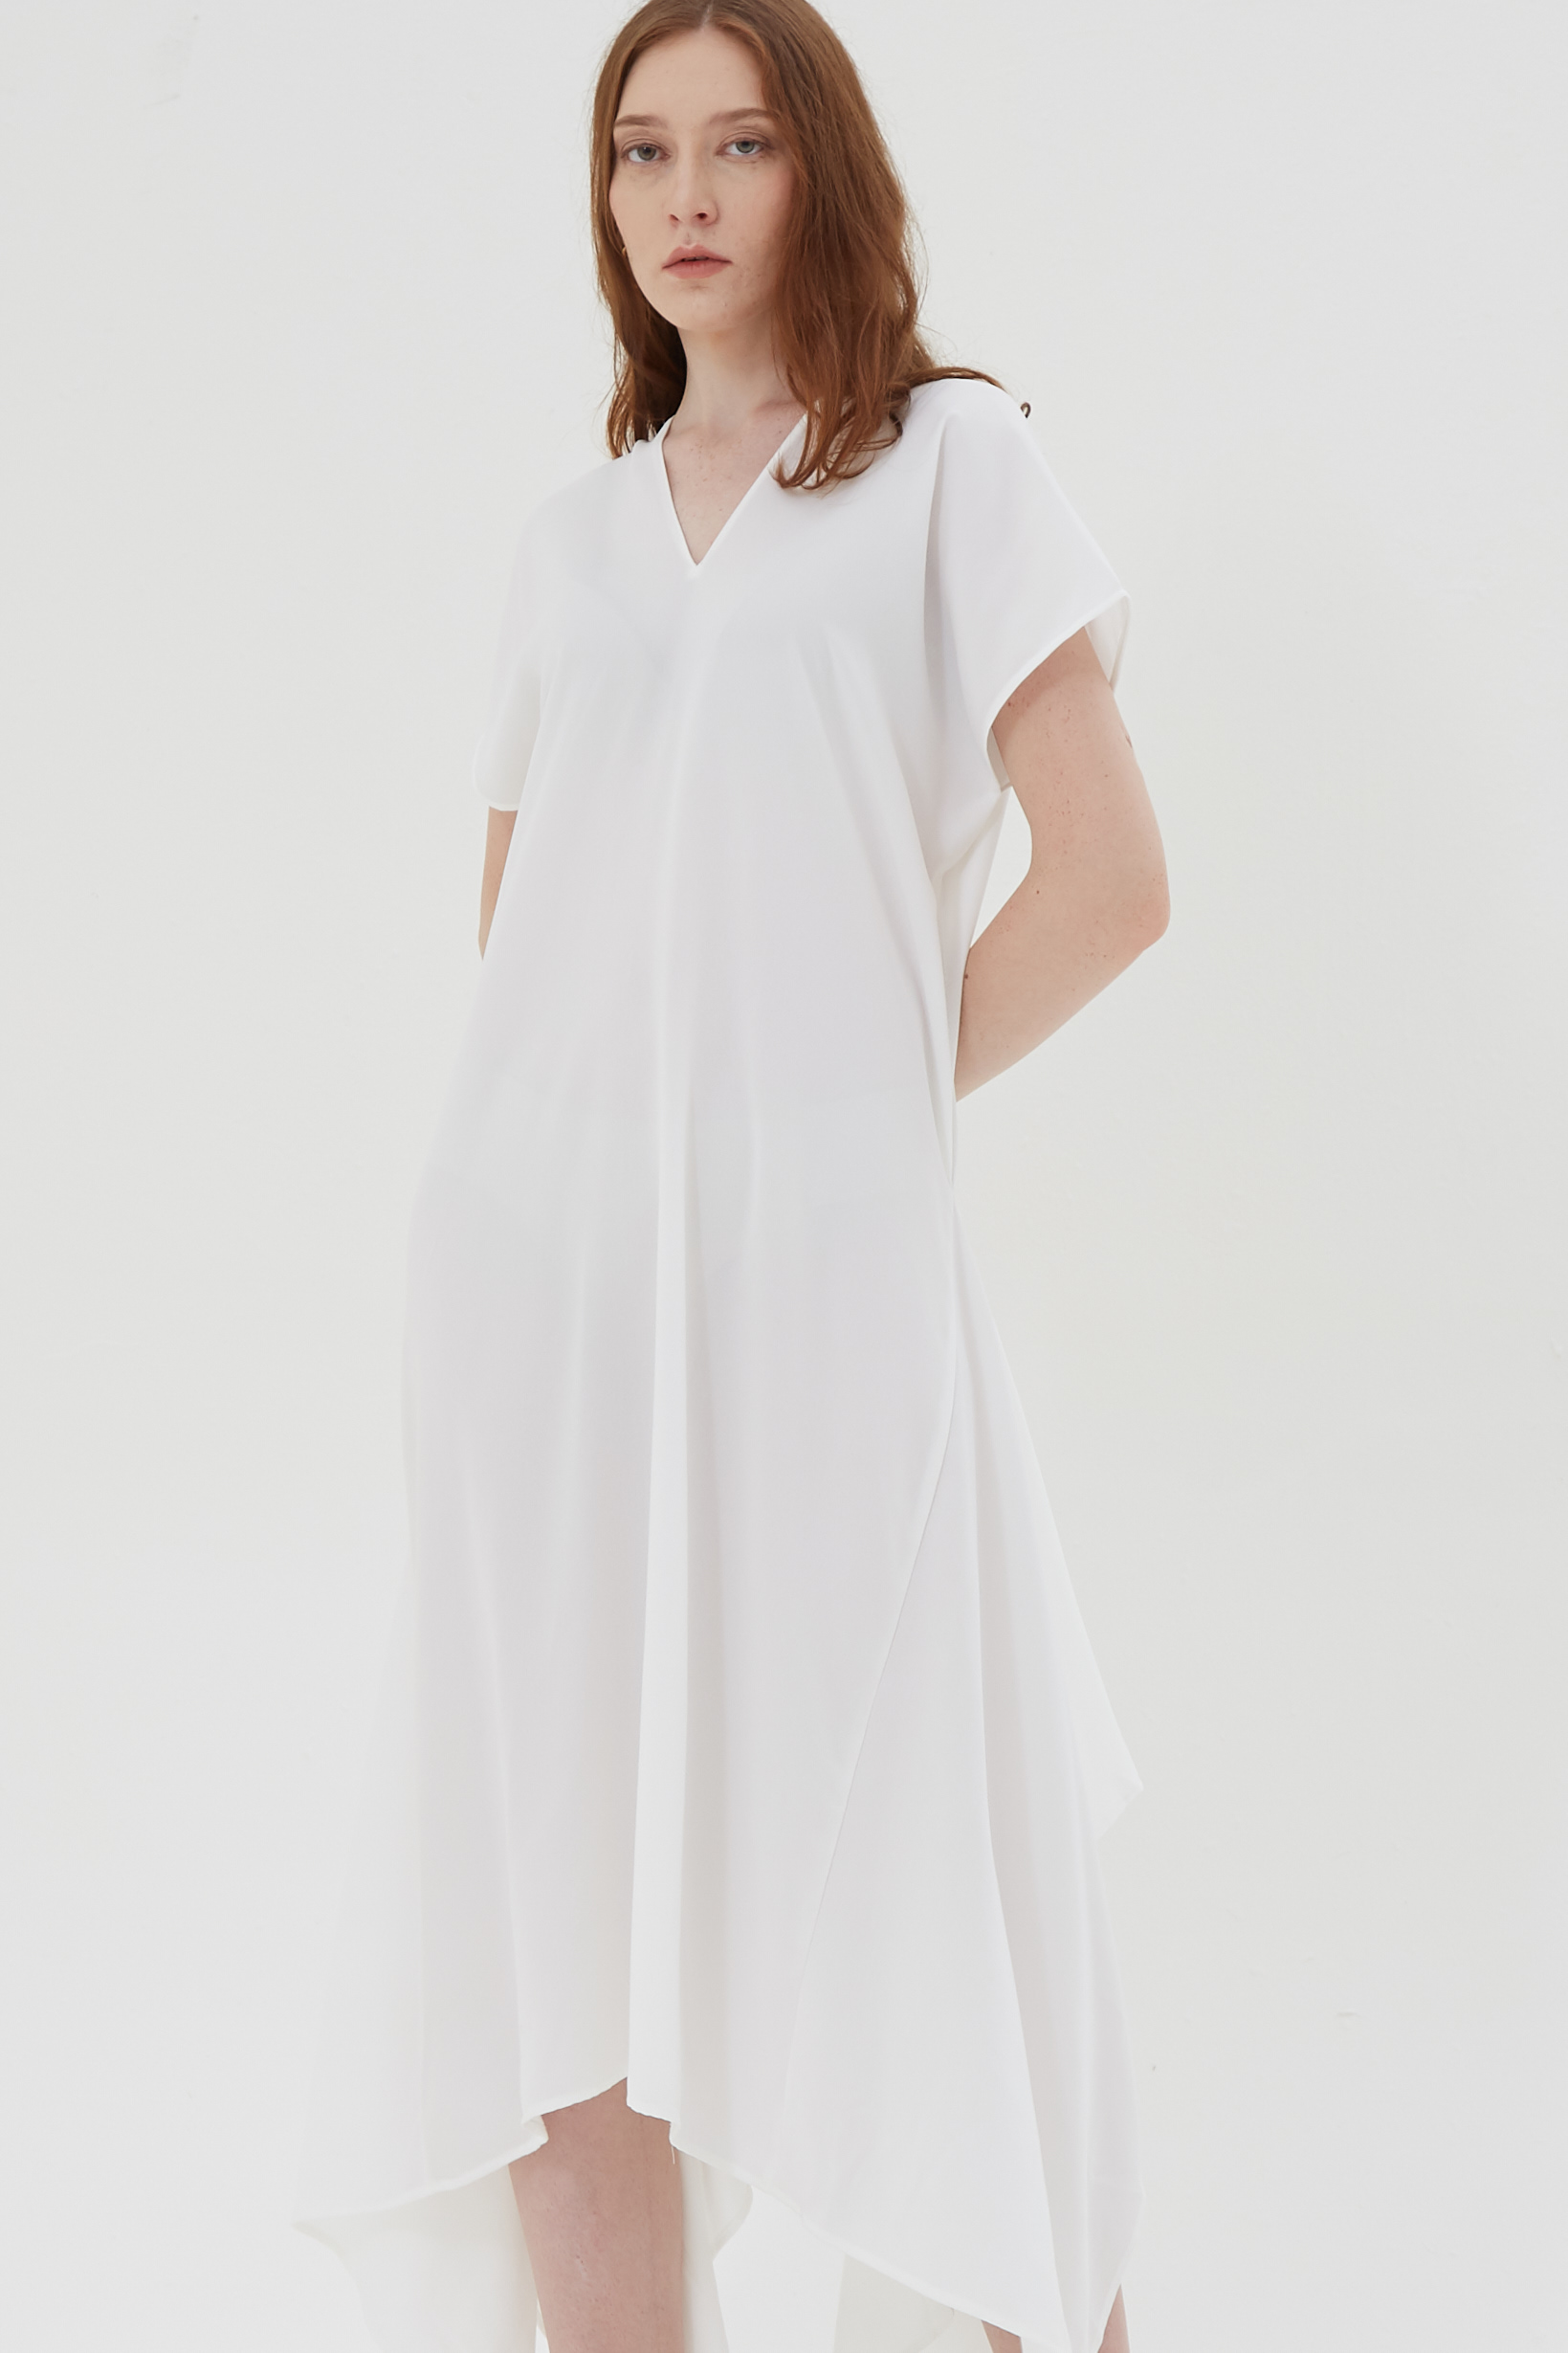 Shopatvelvet Handkerchief Dress White